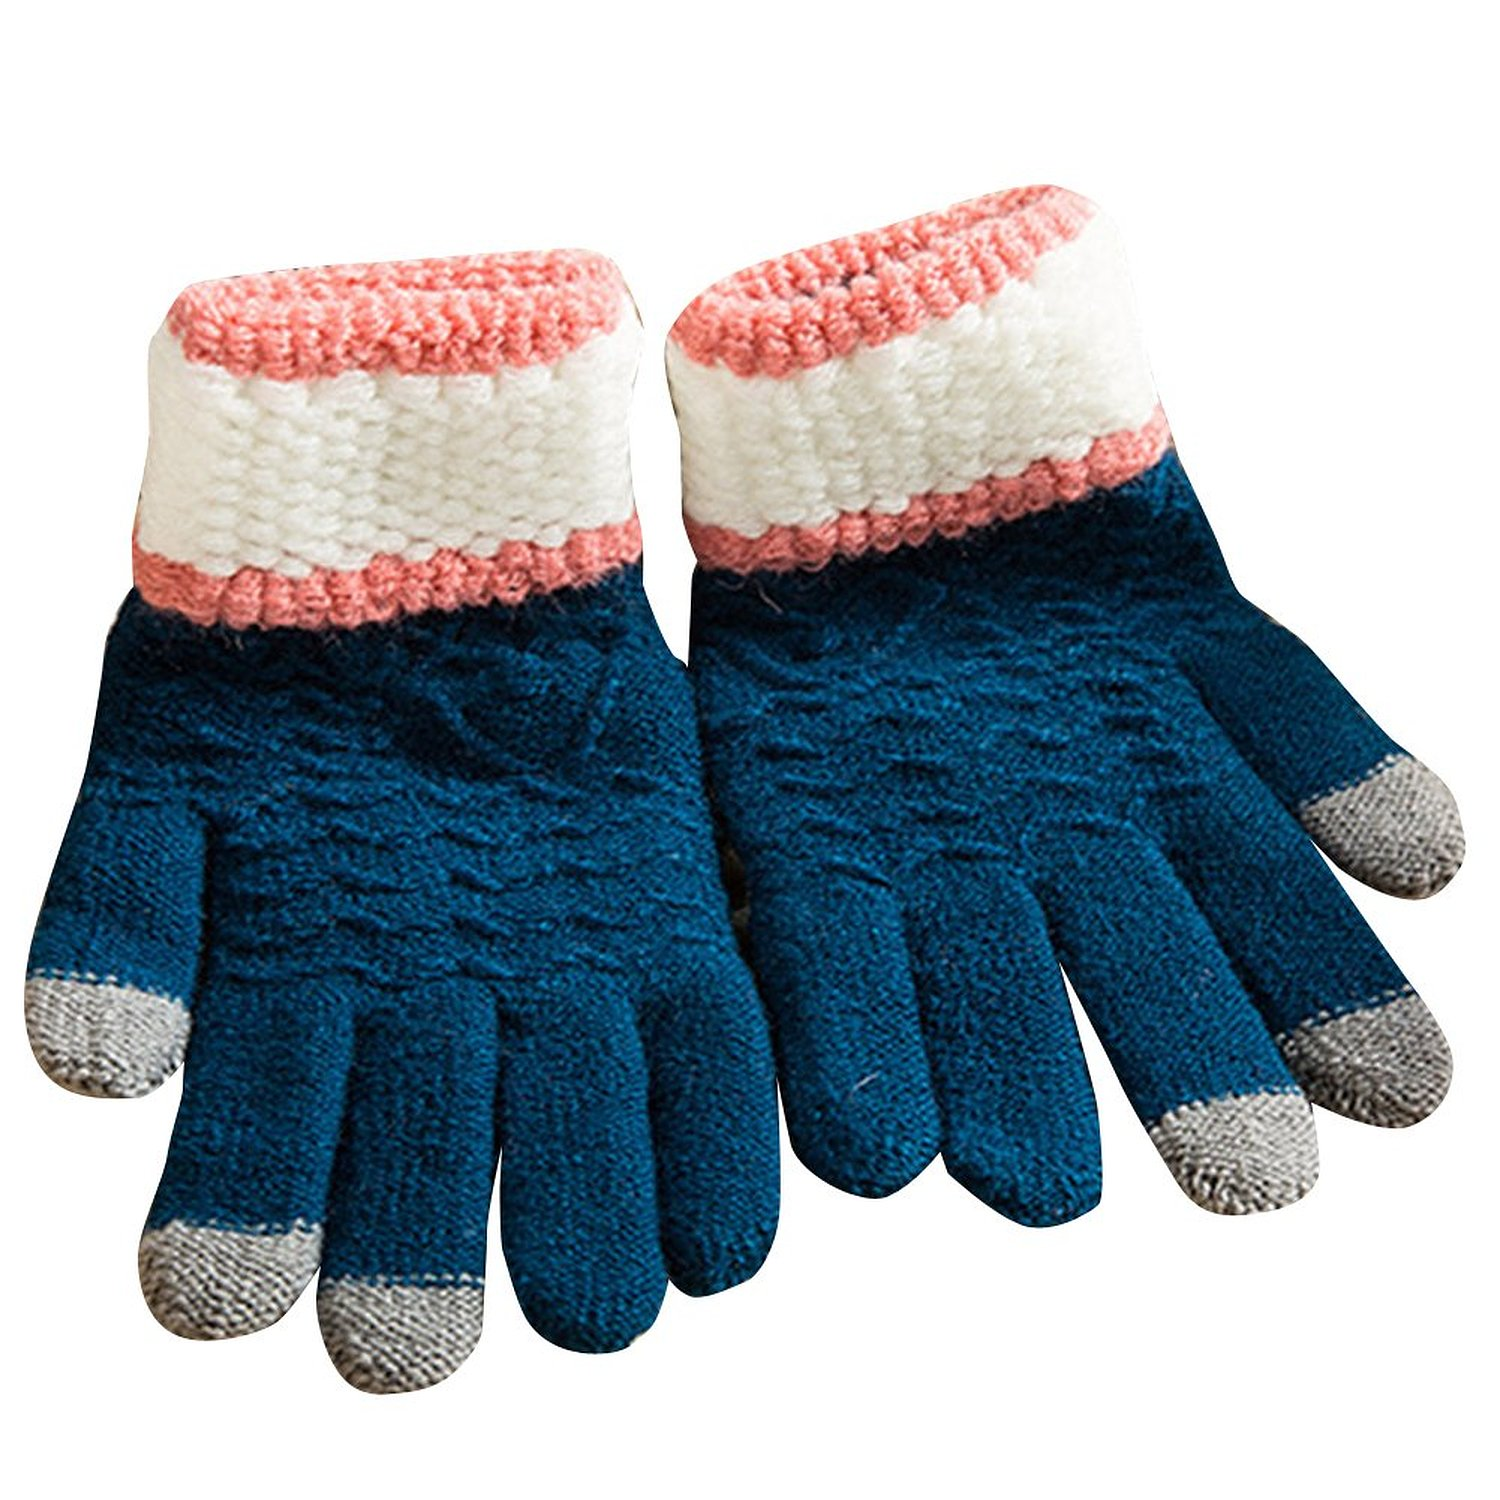 New Arrival Woman Girls Winter Wool Warm Touch Screen Glove Mitten Royal Blue free shipping(China (Mainland))